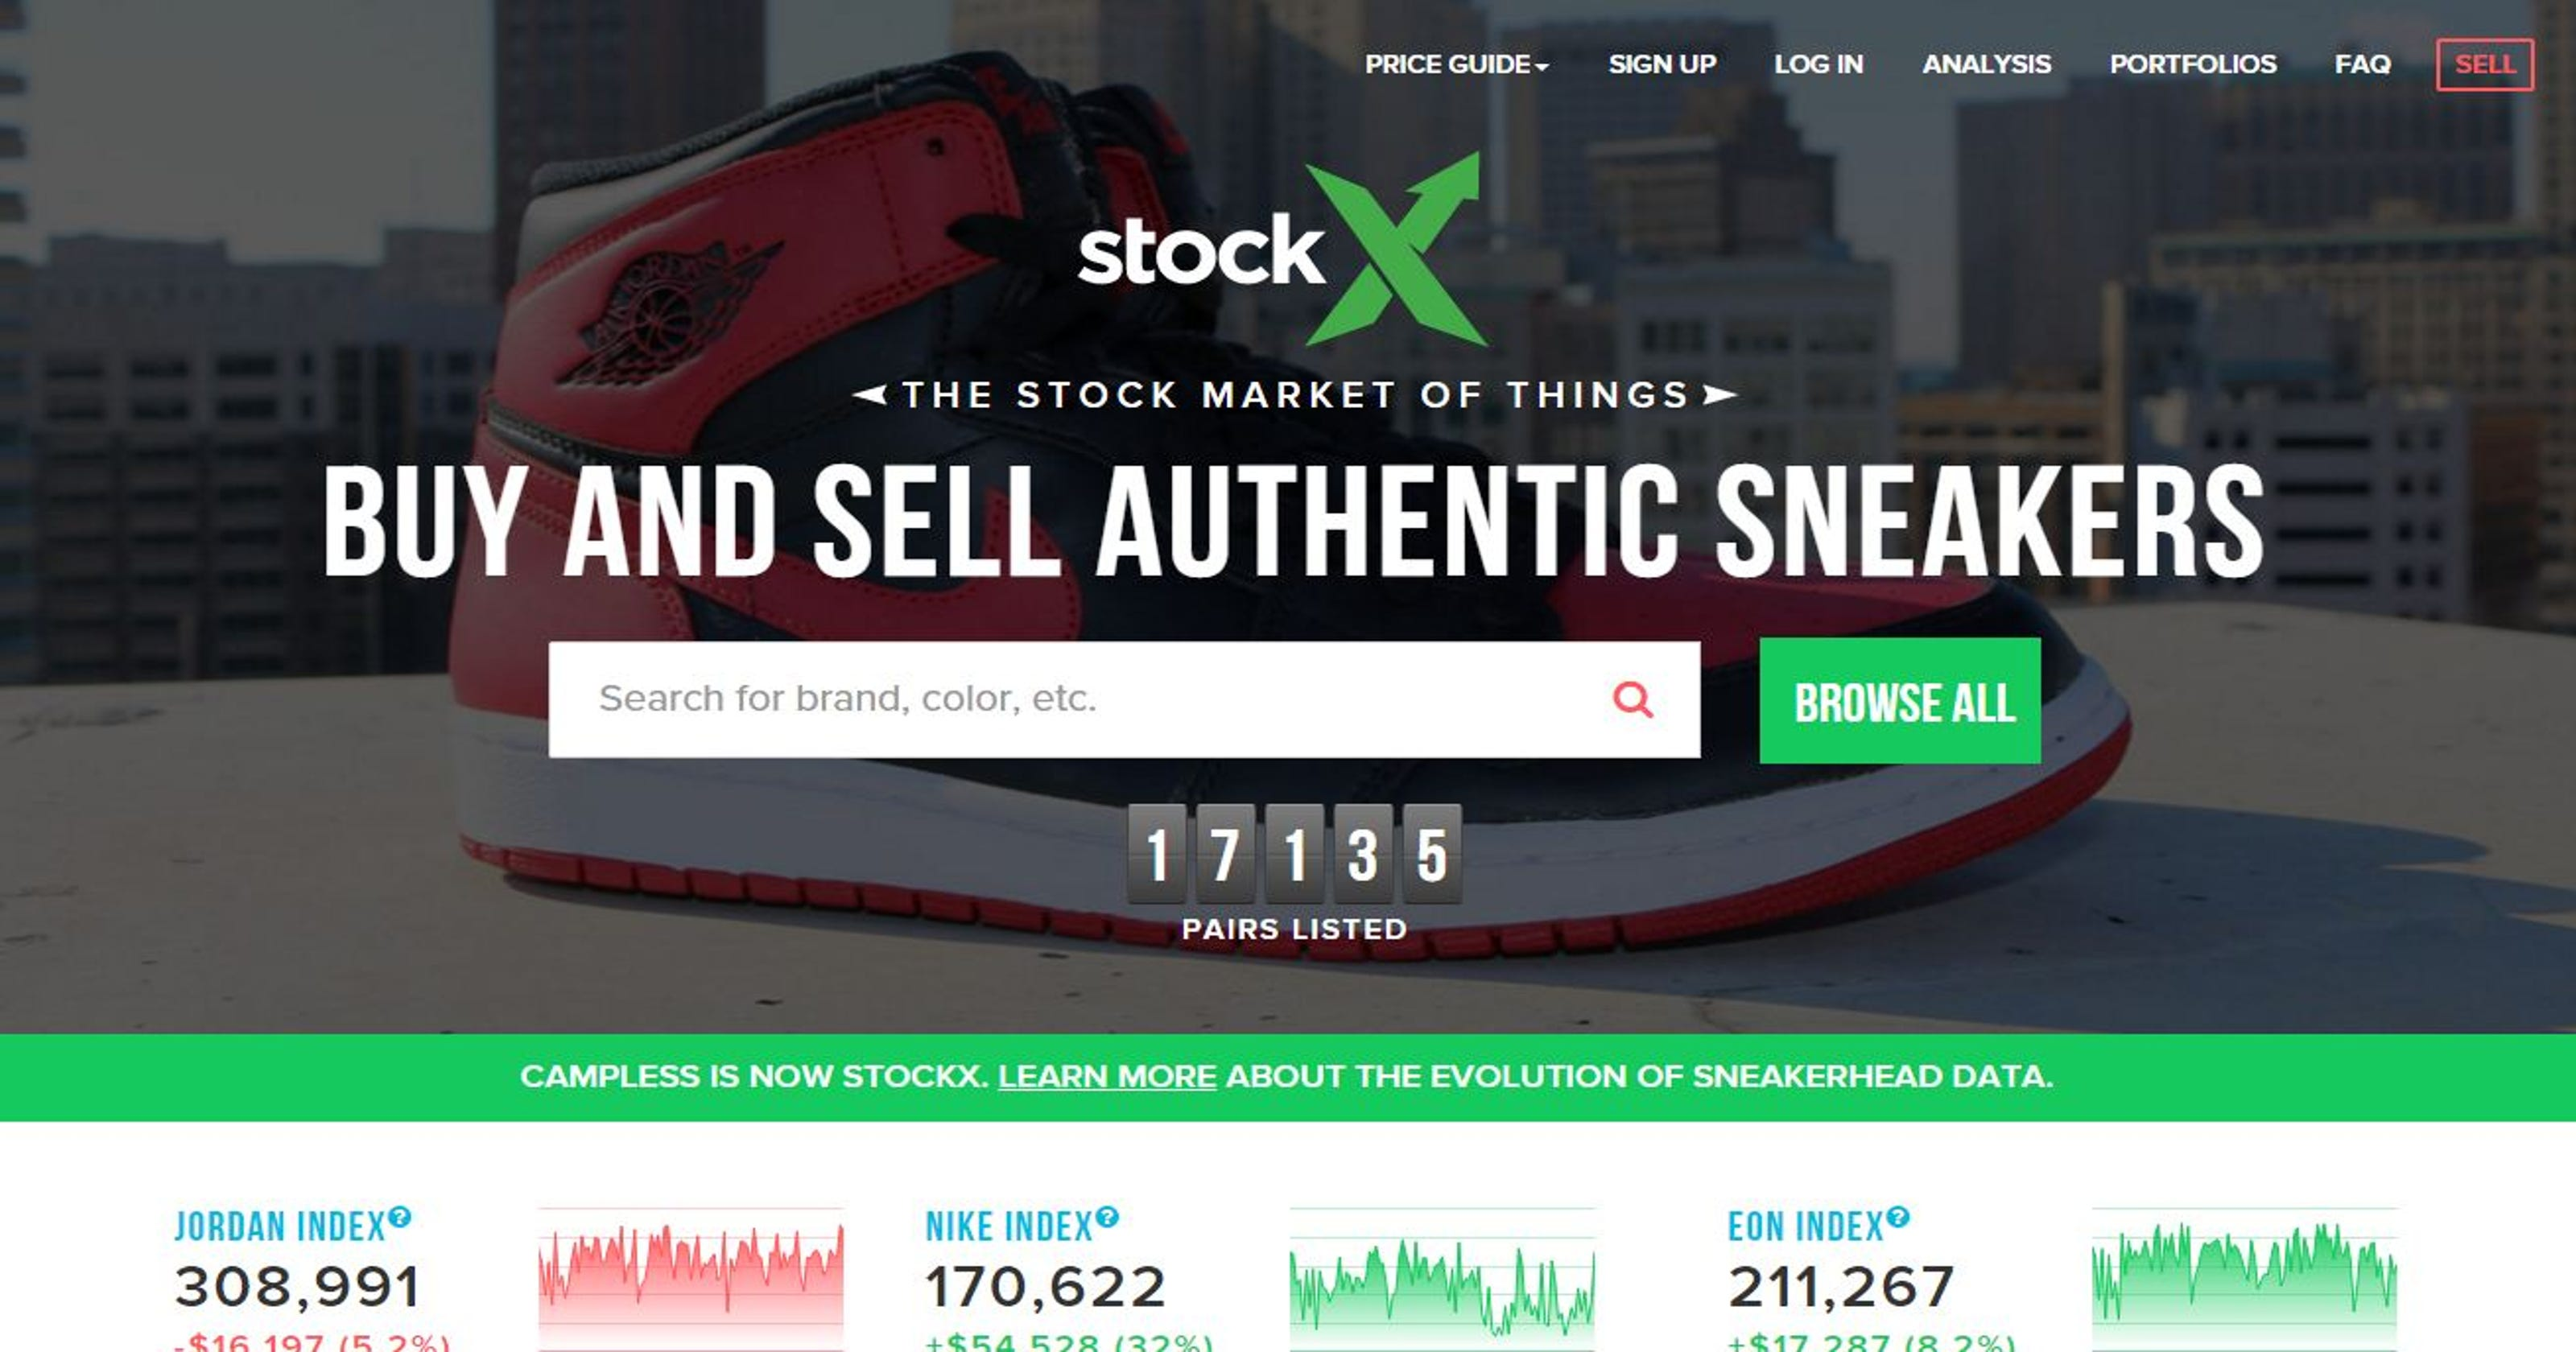 58599261 Gilbert launches StockX, the 'stock market of things'